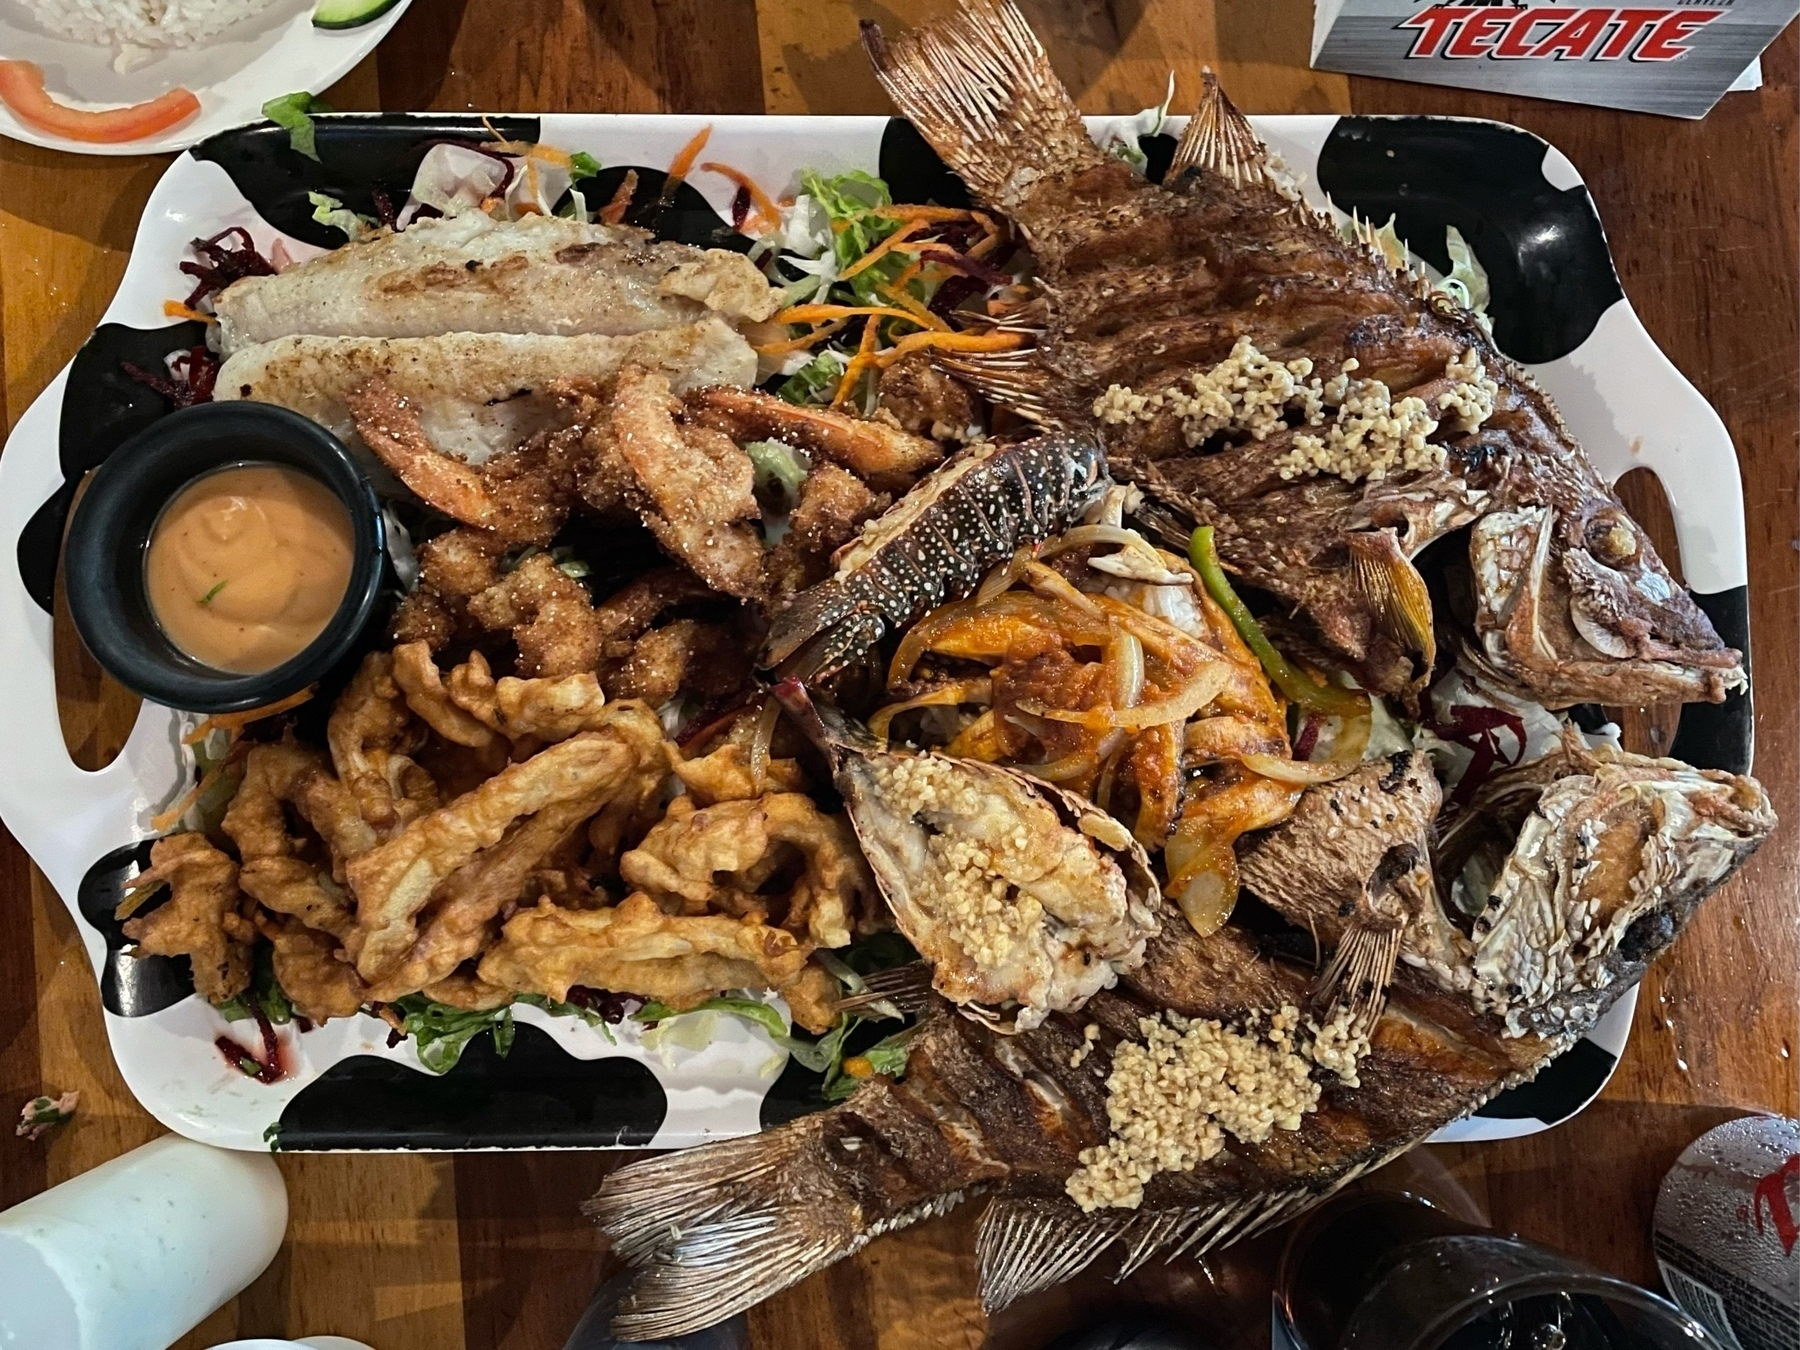 Fish platter with calamari, fried whole fish, filet of fish, lobster tails, shrimp, and more